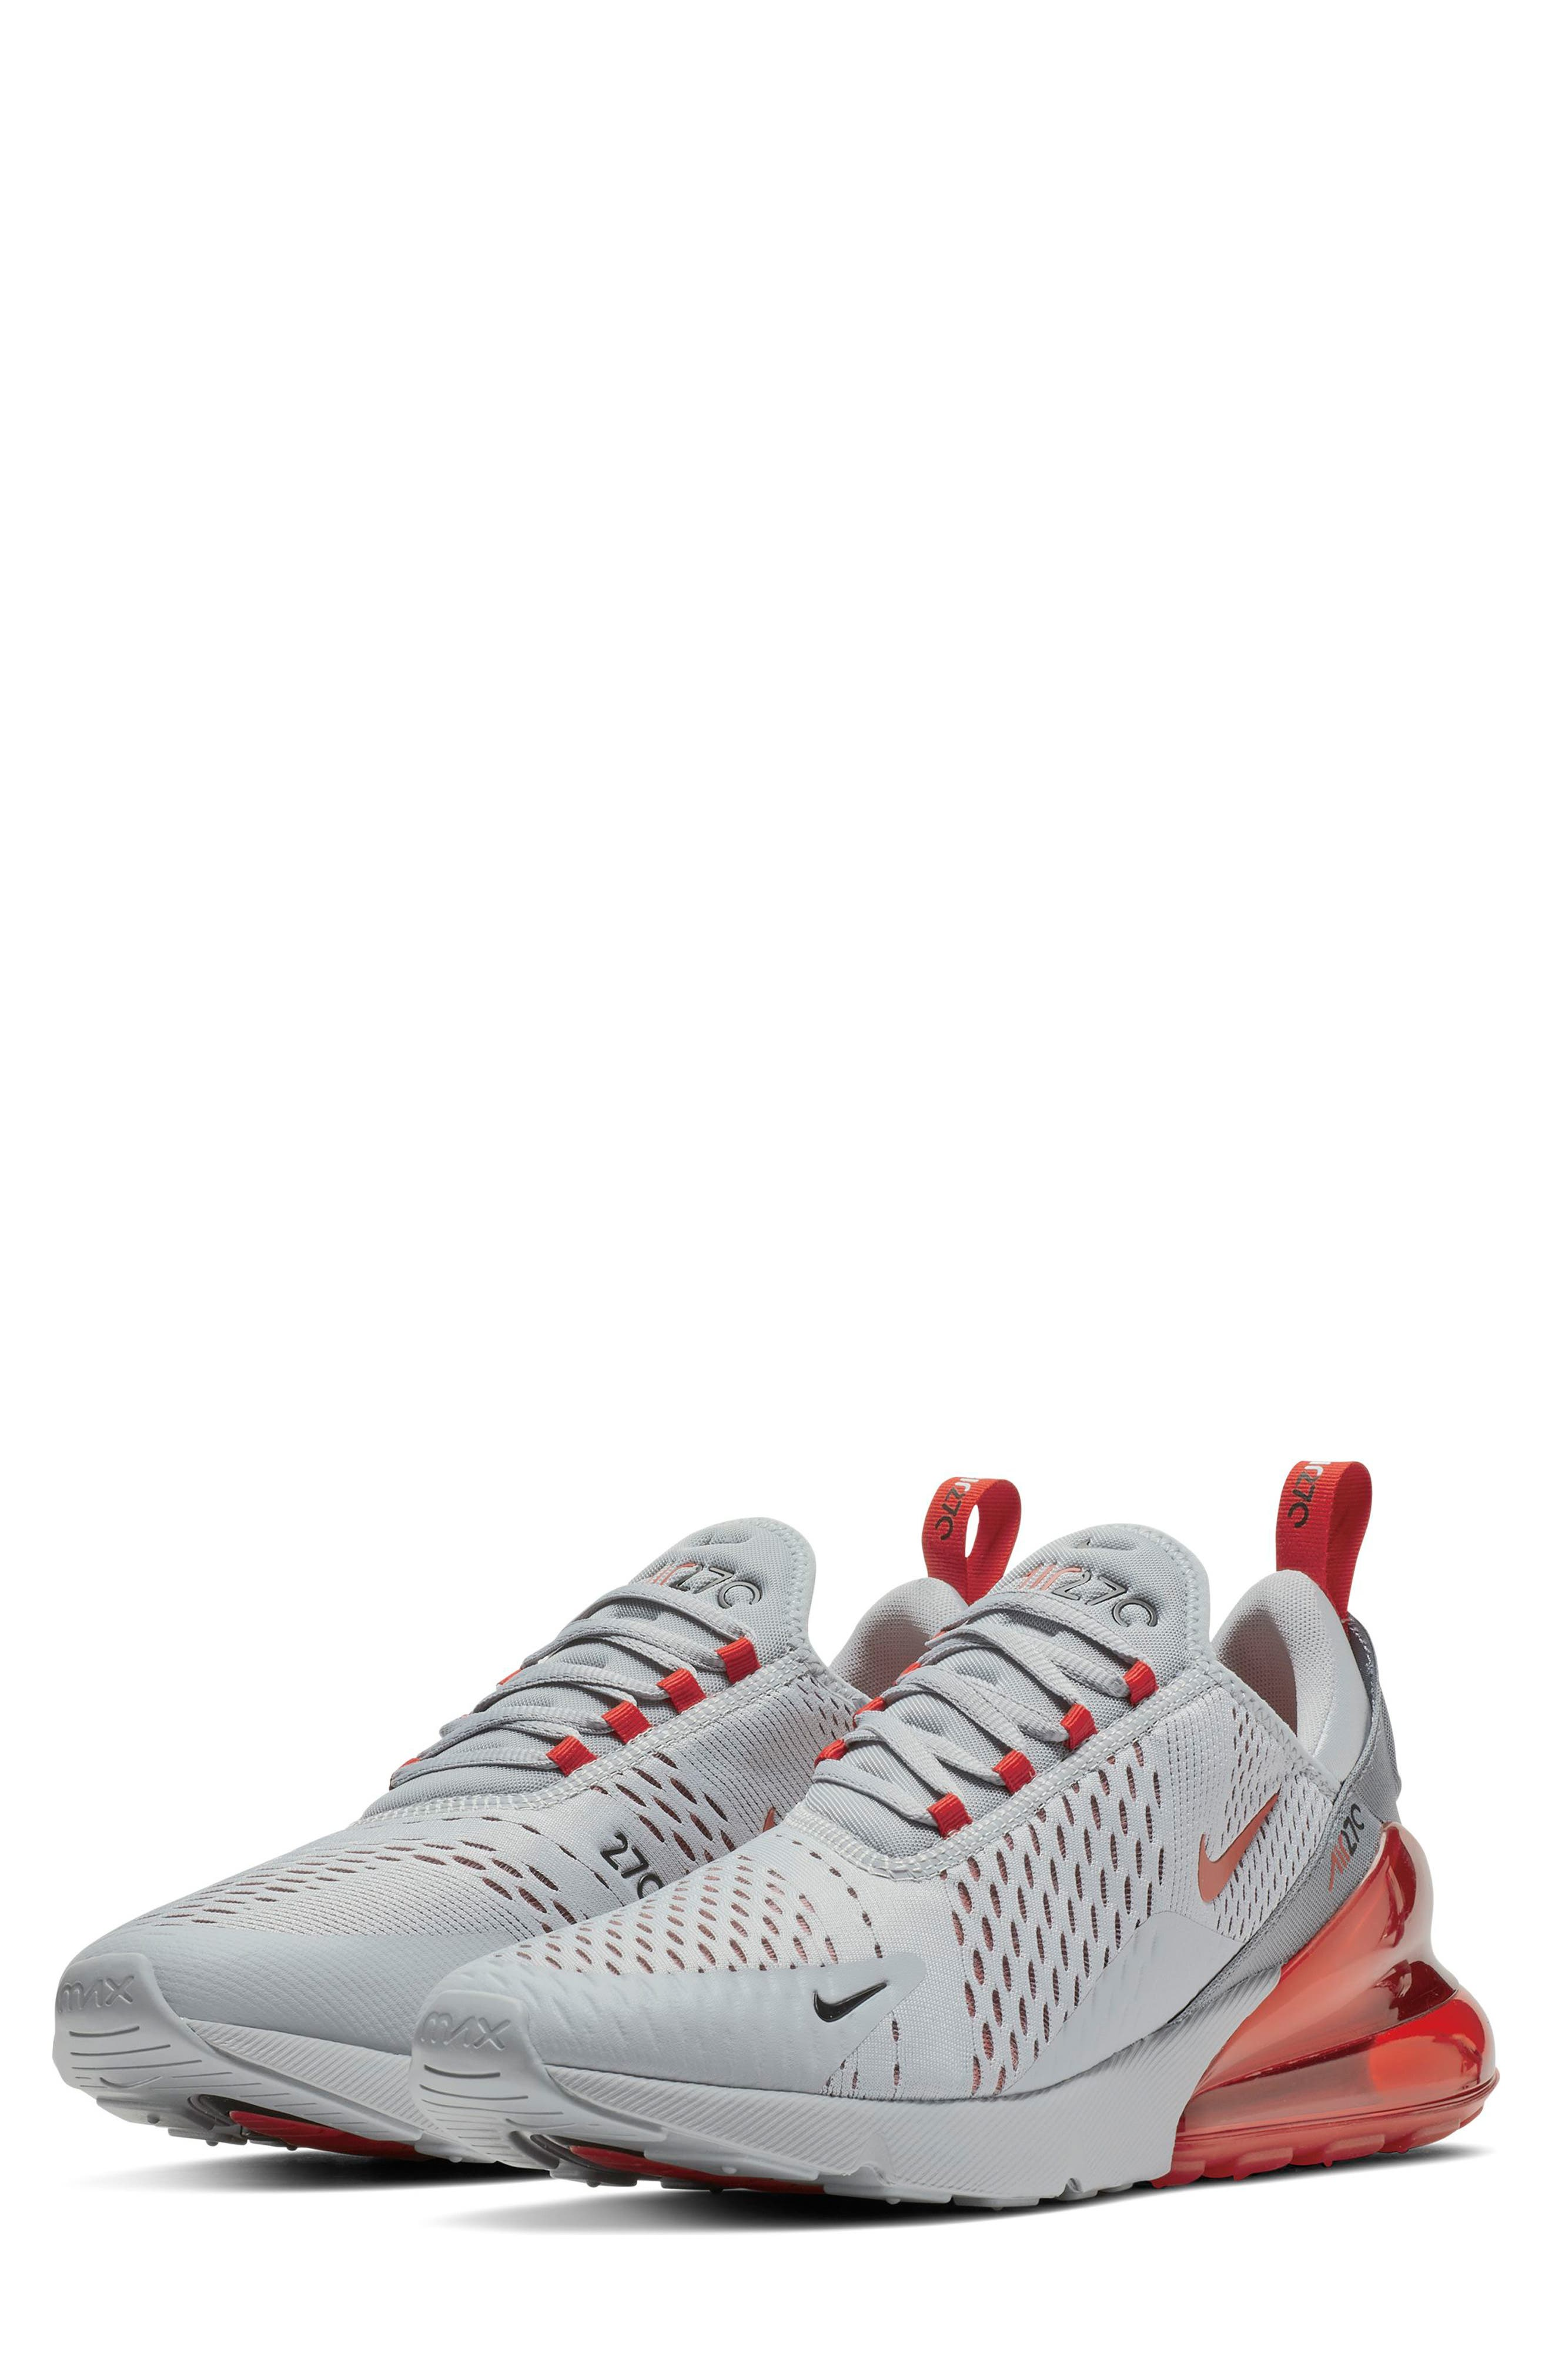 And SneakersNordstrom Shoes Nike Men's Nike xBoCder